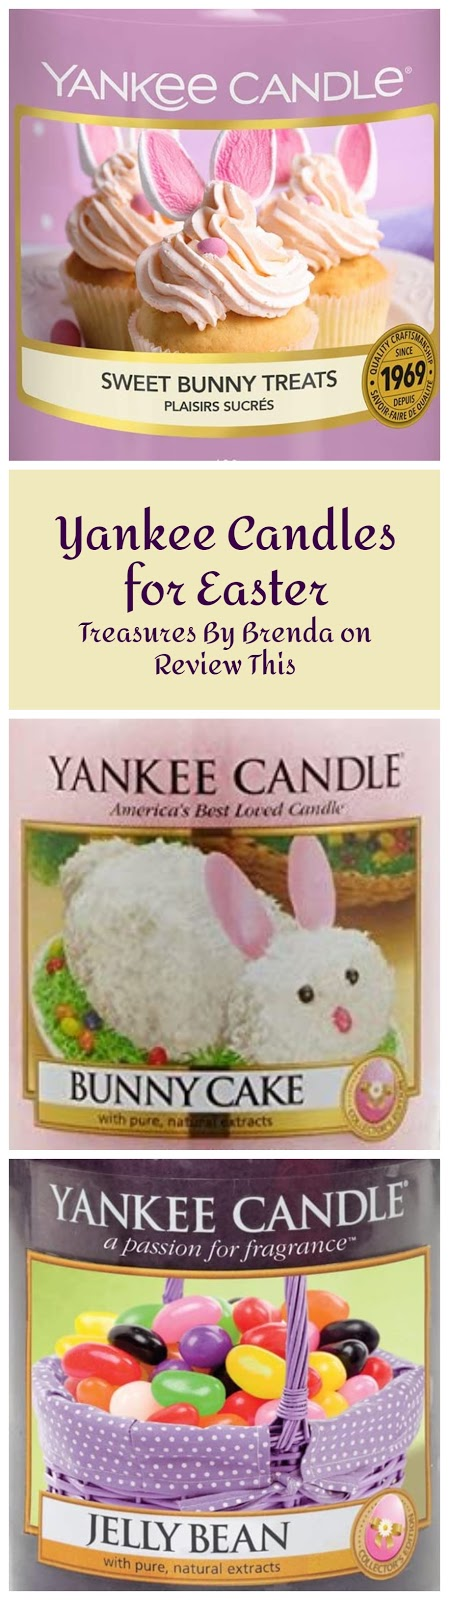 Yankee Candles for Easter